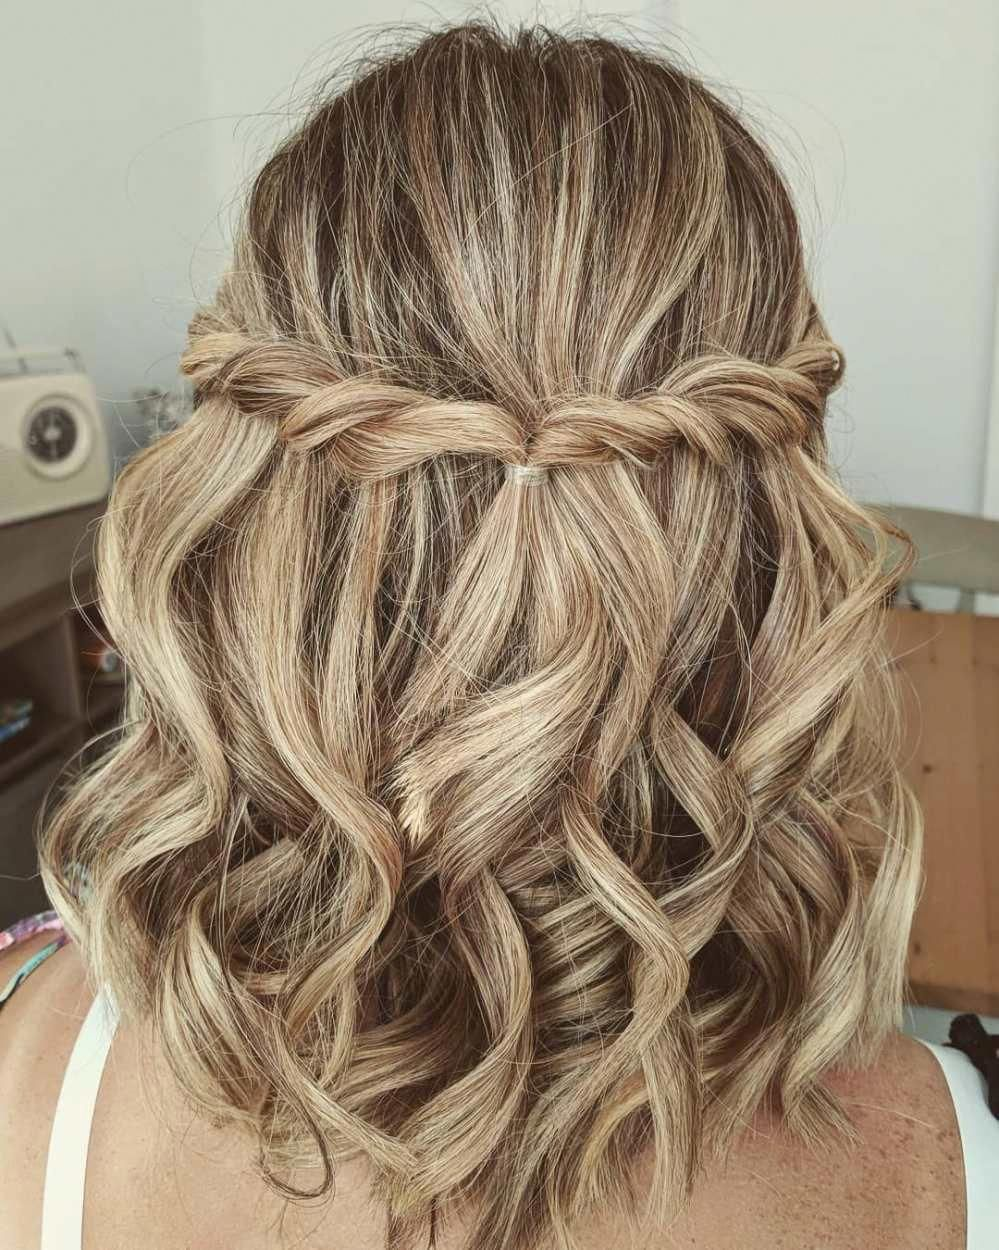 These Prom Hairstyles Half Up Half Down Truly Are Stylish Promhairstyleshalfup Updos For Medium Length Hair Up Dos For Medium Hair Medium Length Hair Styles